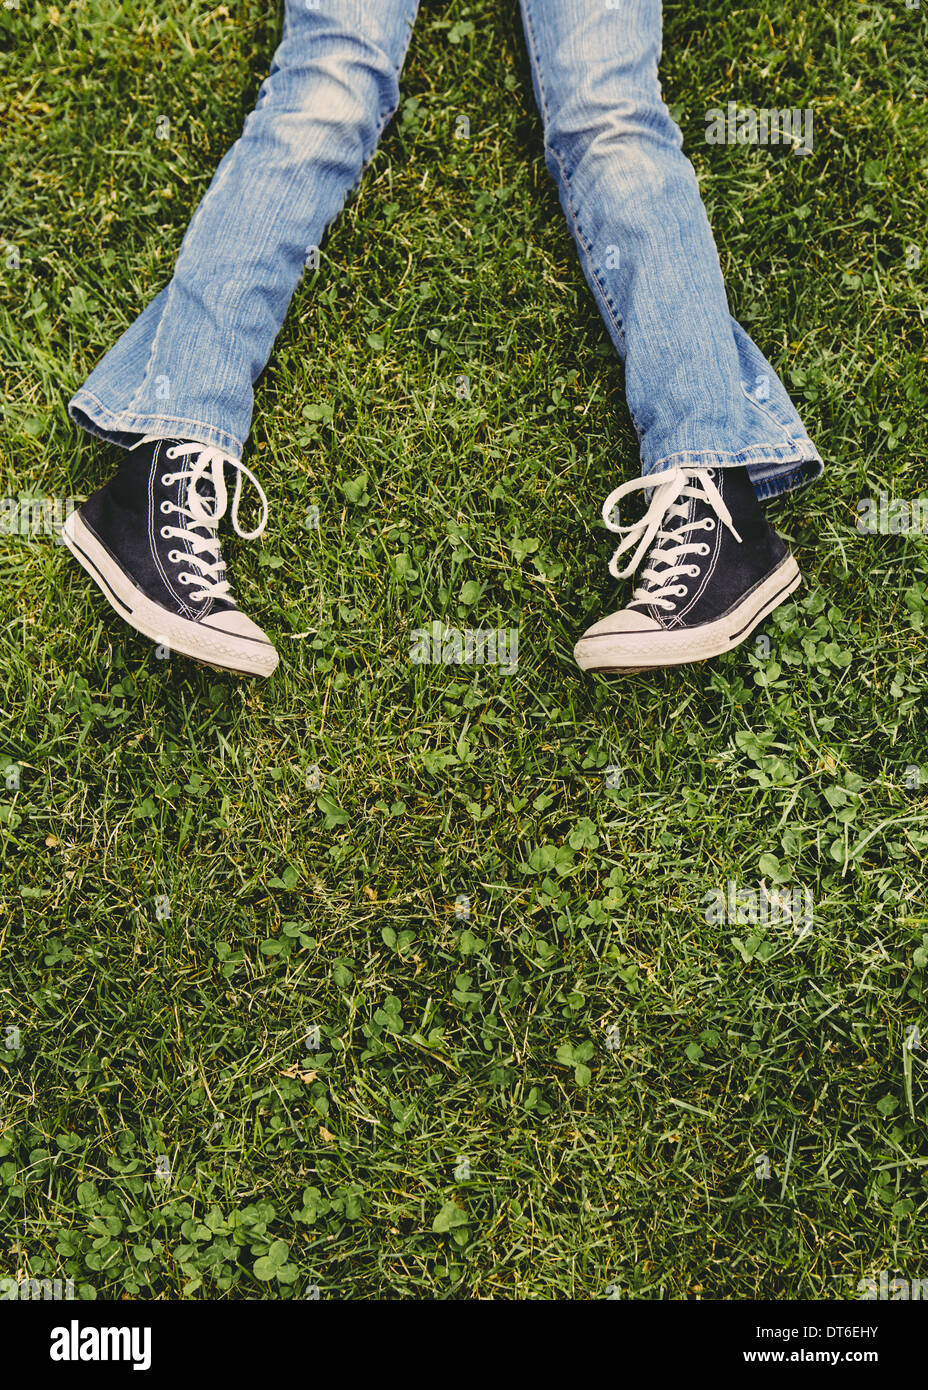 A ten year old girl lying on the grass. Cropped view of her lower legs. Wearing sneakers and faded blue jeans. - Stock Image